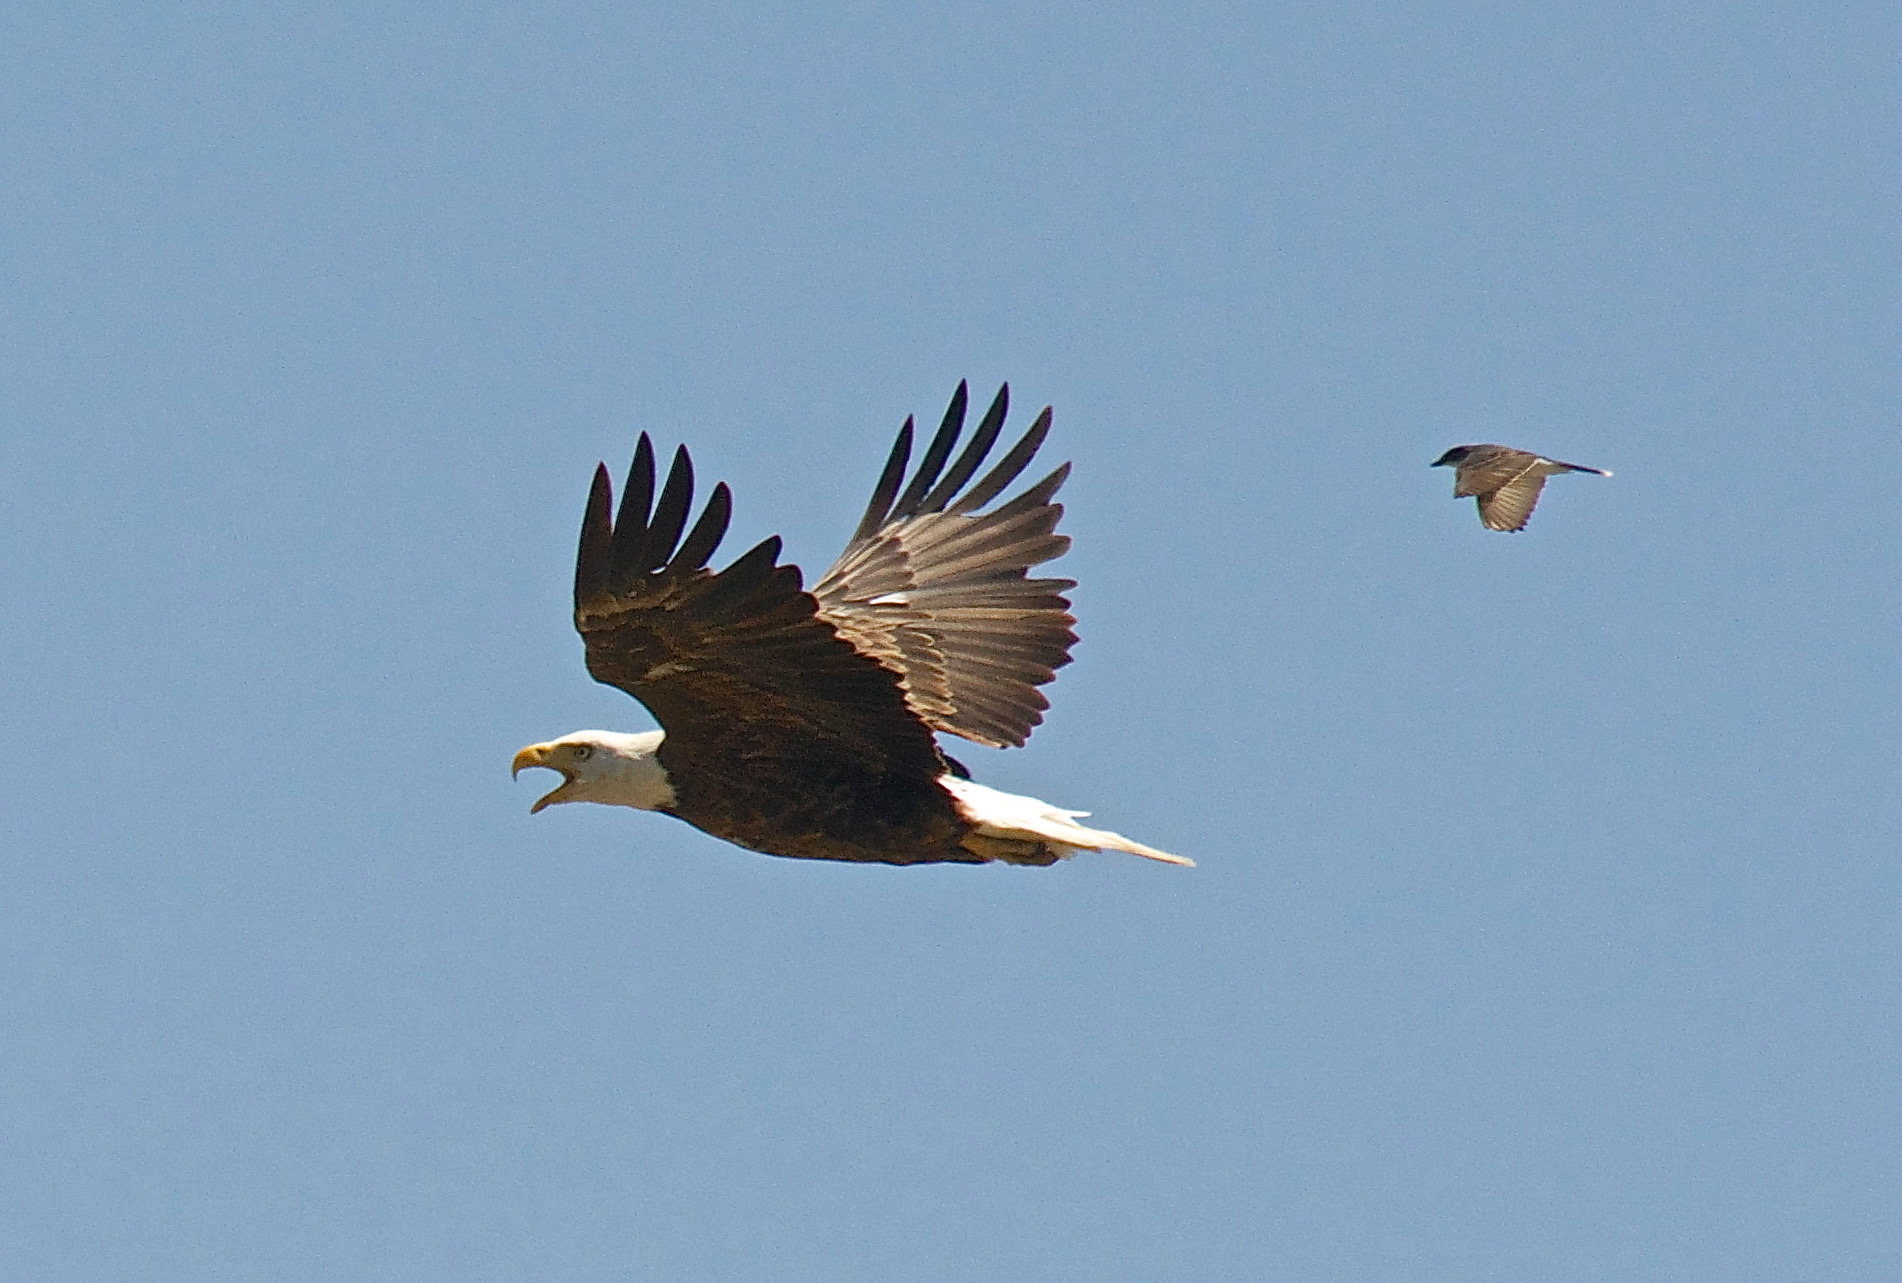 Bald Eagle harassed by Eastern Kingbird